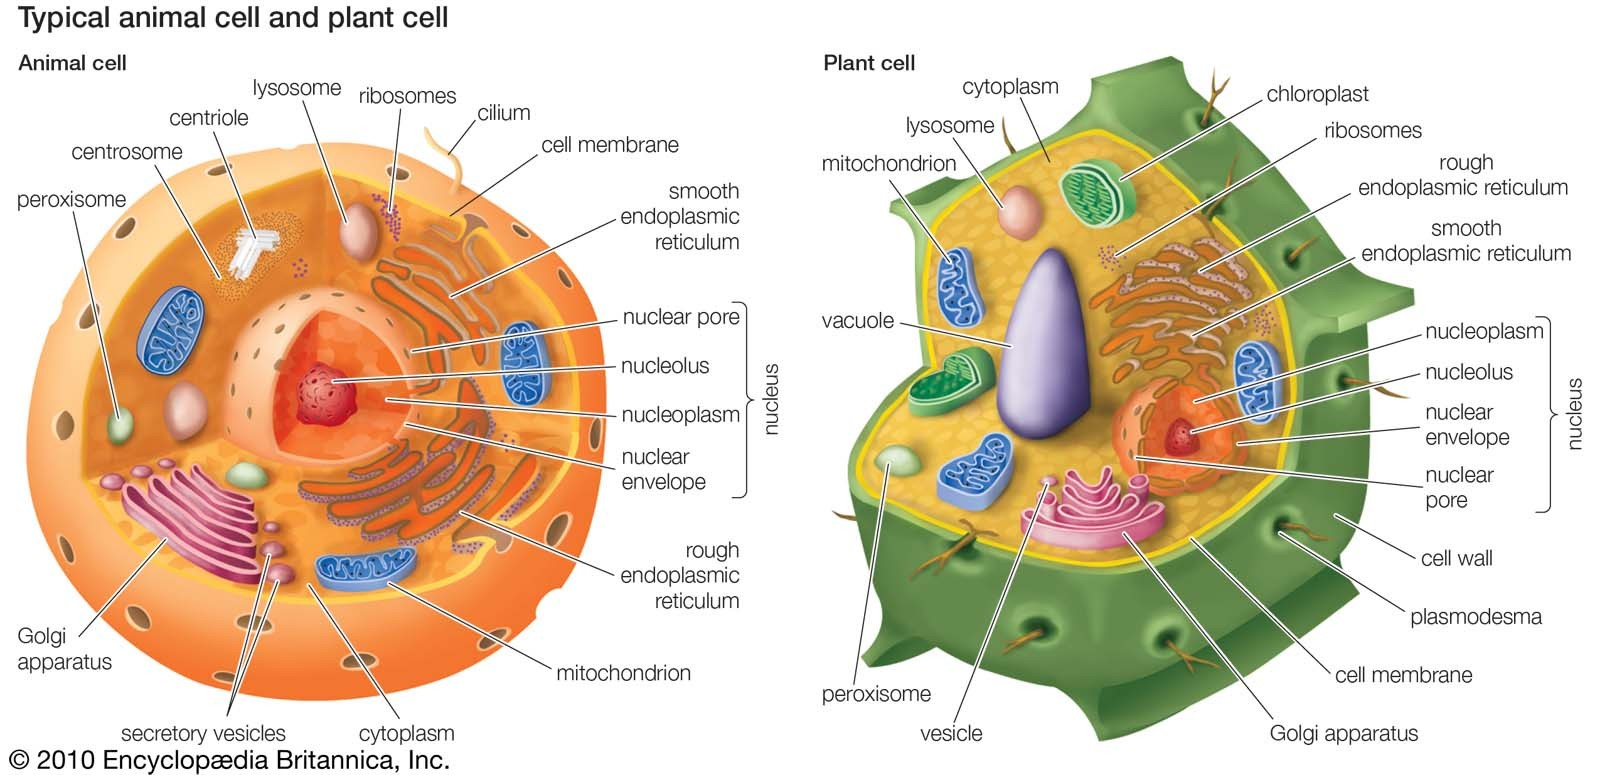 Typical Animal Cell And Plant Cell Diagram